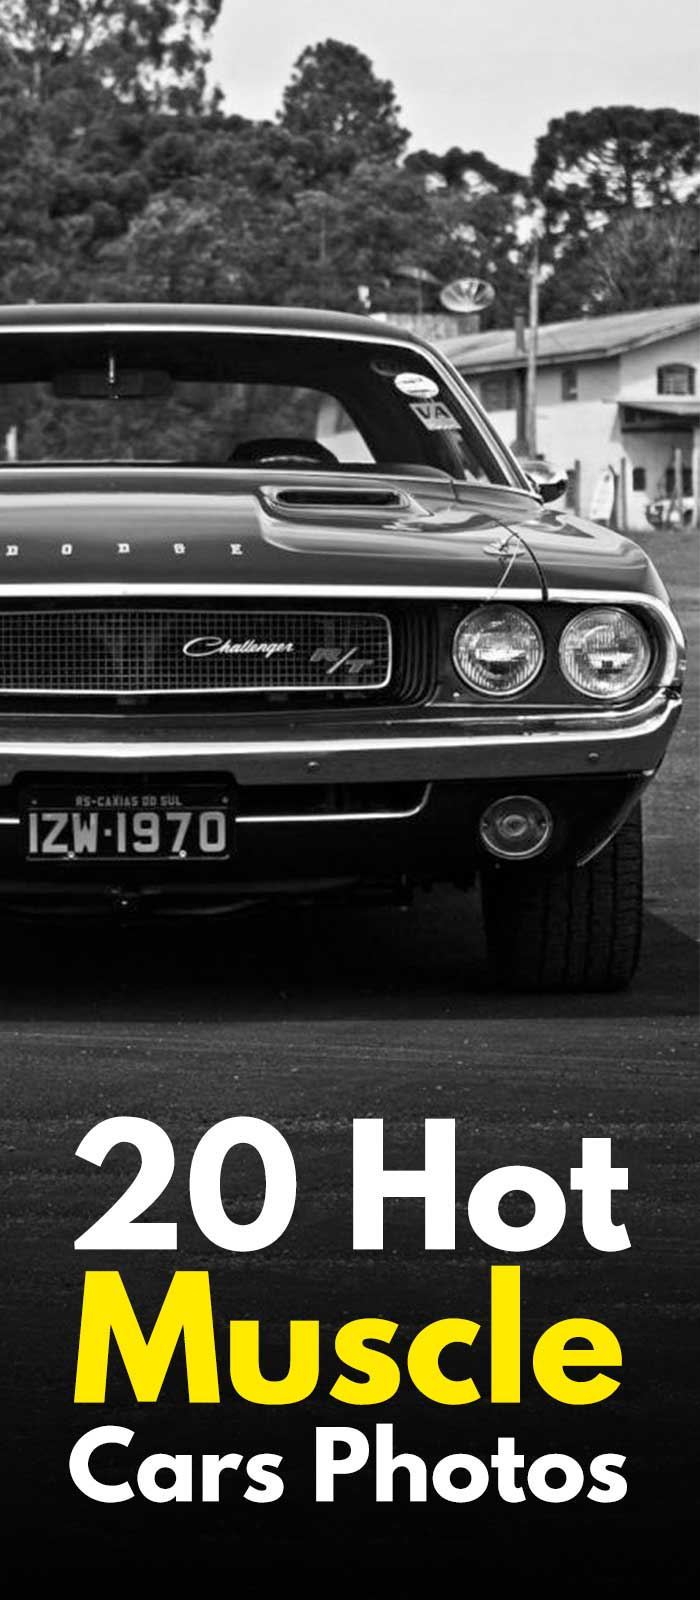 20 Hot Muscle Cars Photos.